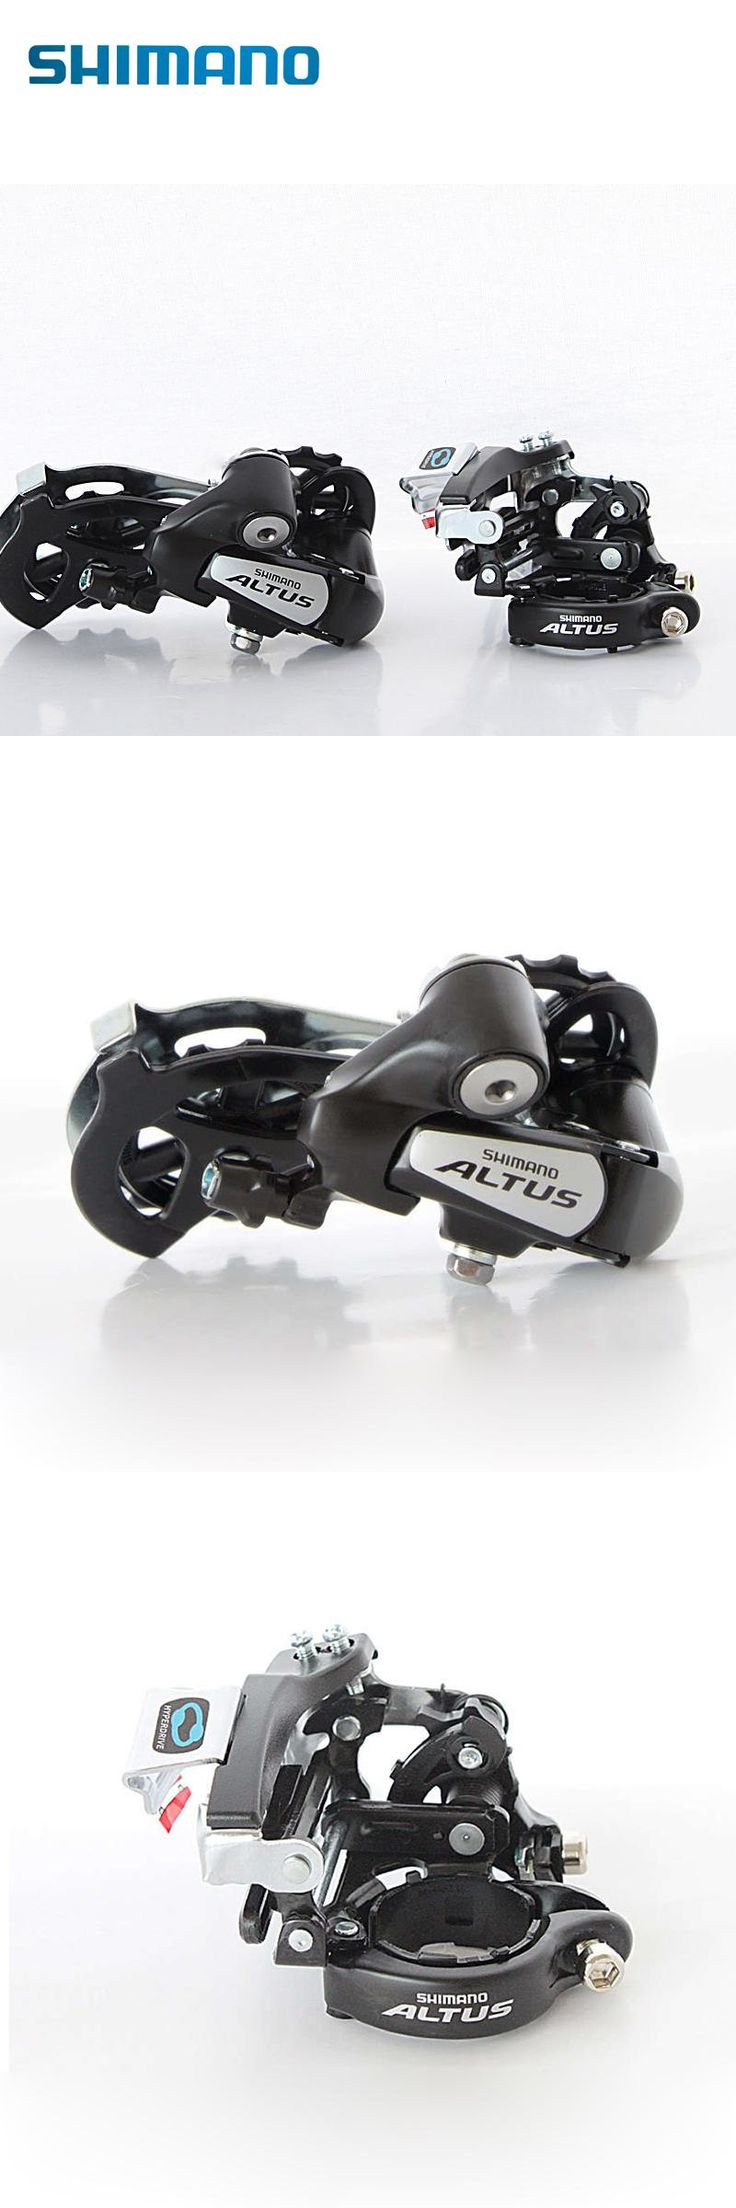 [Visit to Buy] SHIMANO RD-M310 MTB Mountain Bike Front Derailleur FD-M310 & Rear Derailleur 7/8S Black #Advertisement